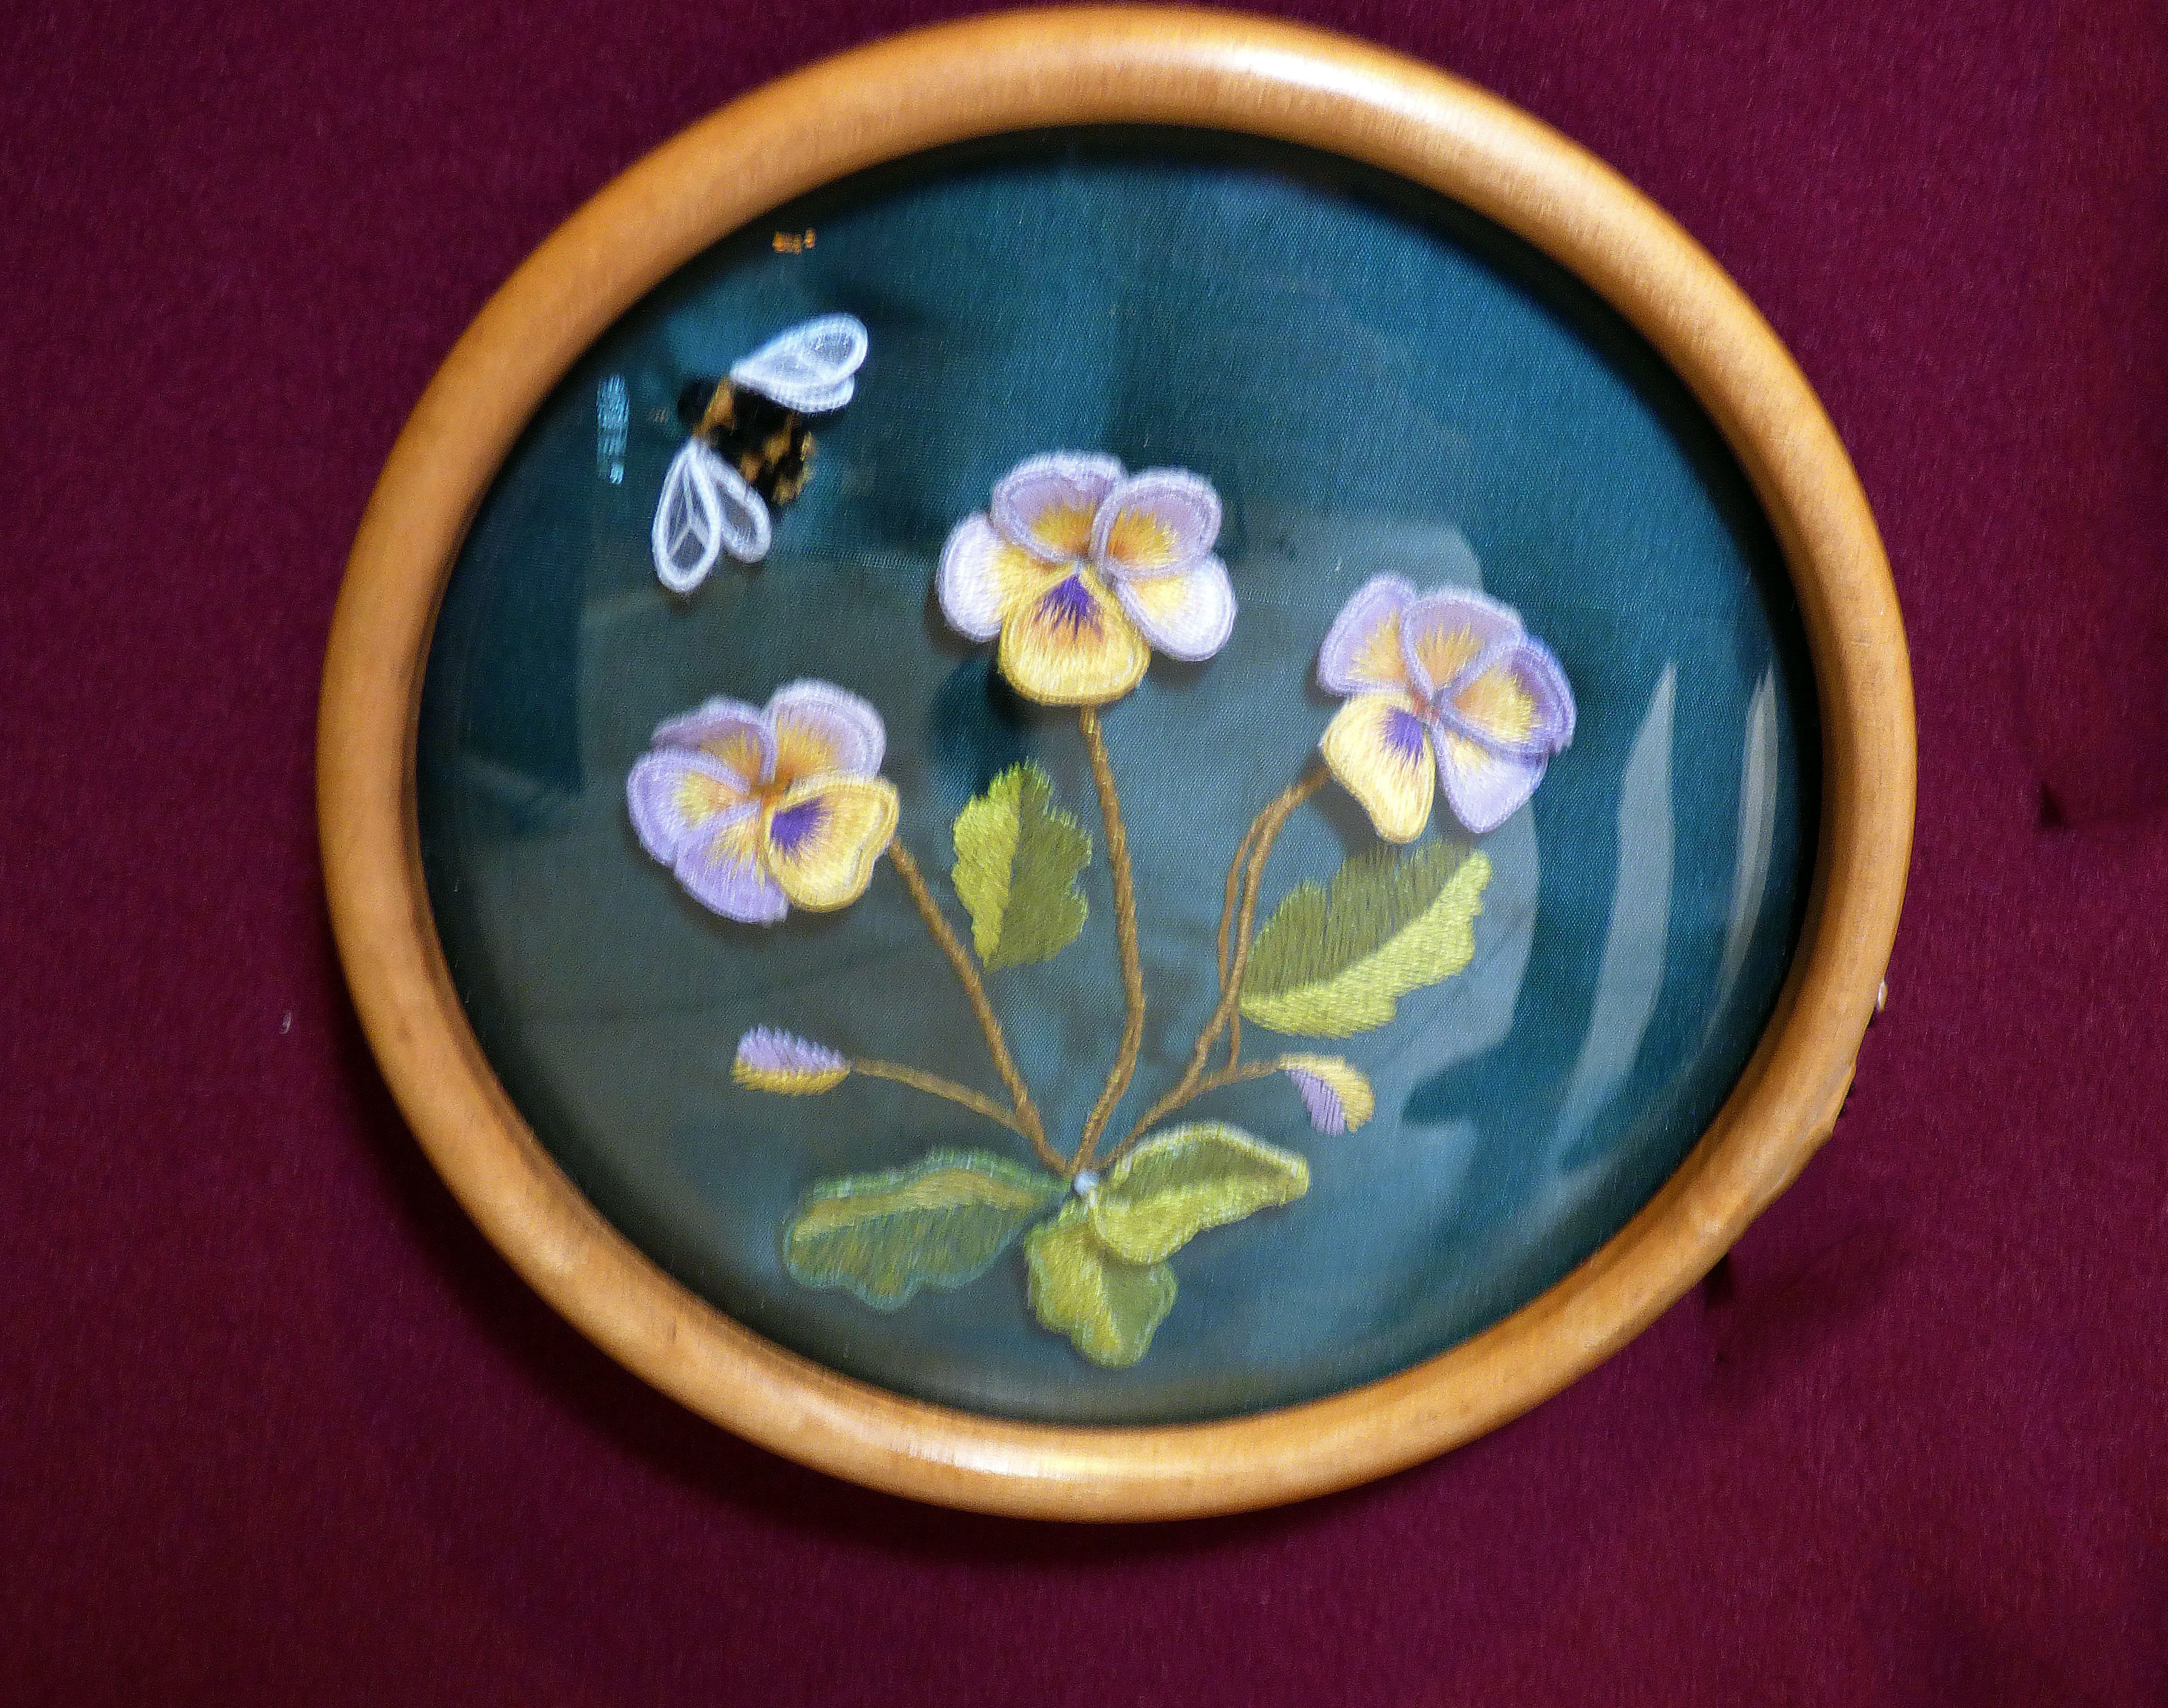 PANSIES by Hilary McCormack at 60 Glorious Years exhibition 2016